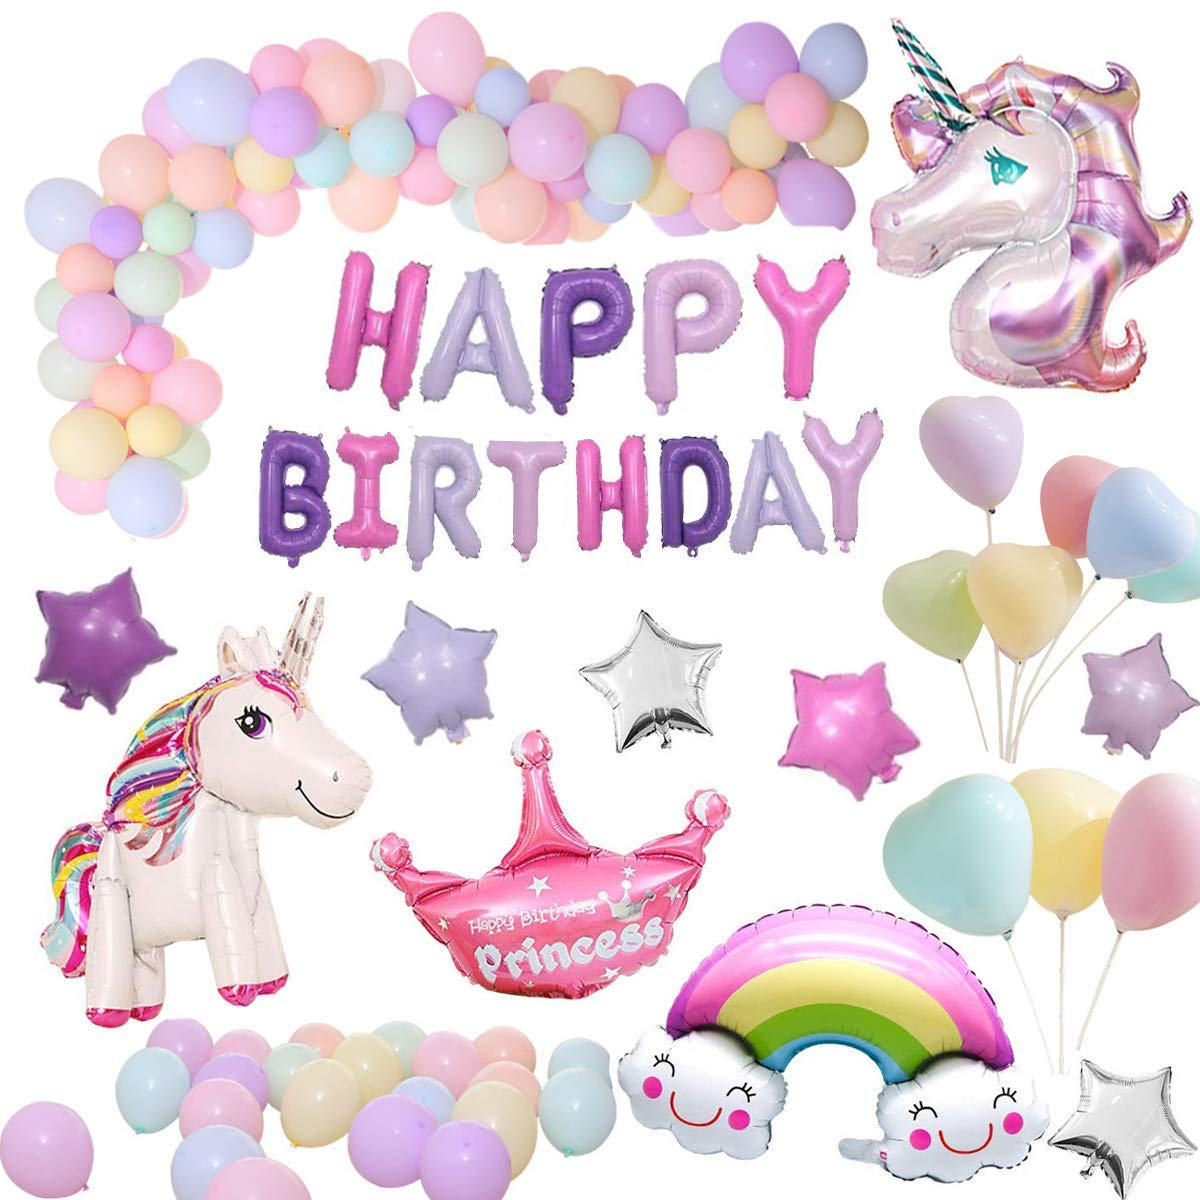 Unicorn Party Supplies, Unicorn Themed Party Favors Birthday Party  Decorations, Unicorn Balloons